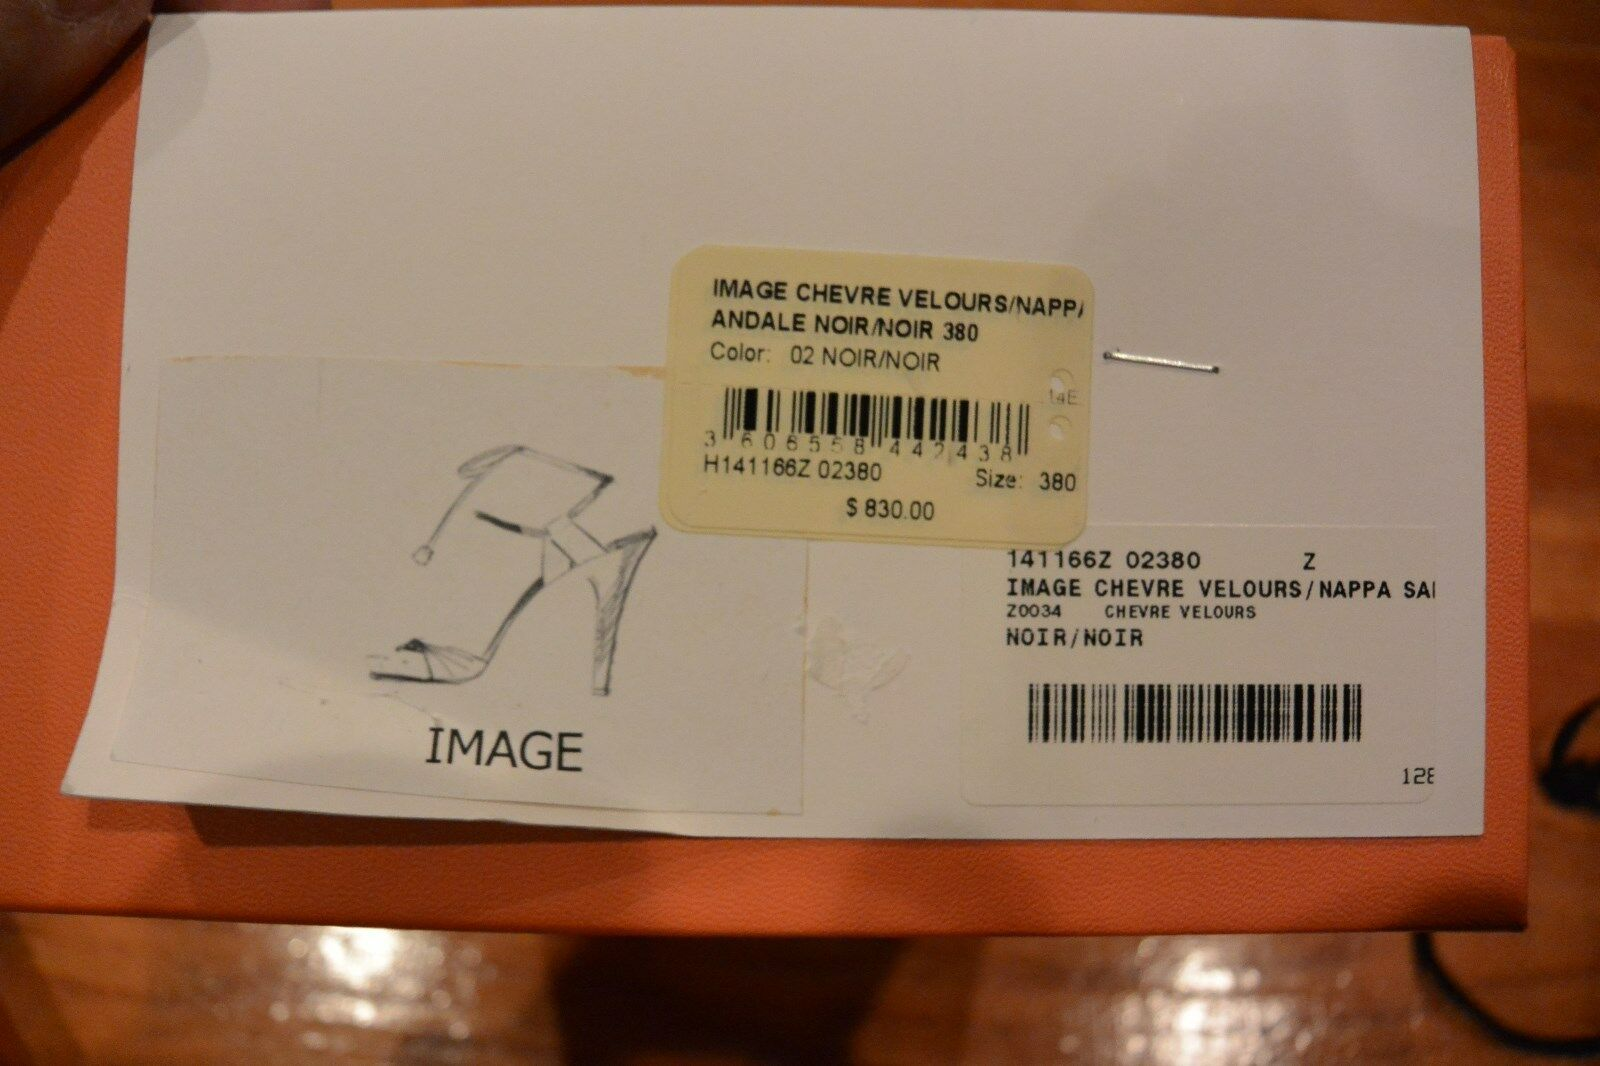 NIB HERMES HERMES HERMES Image Chevre Velours  Nappa Leather & Suede Lace Heel Open Toe,  904 67a174